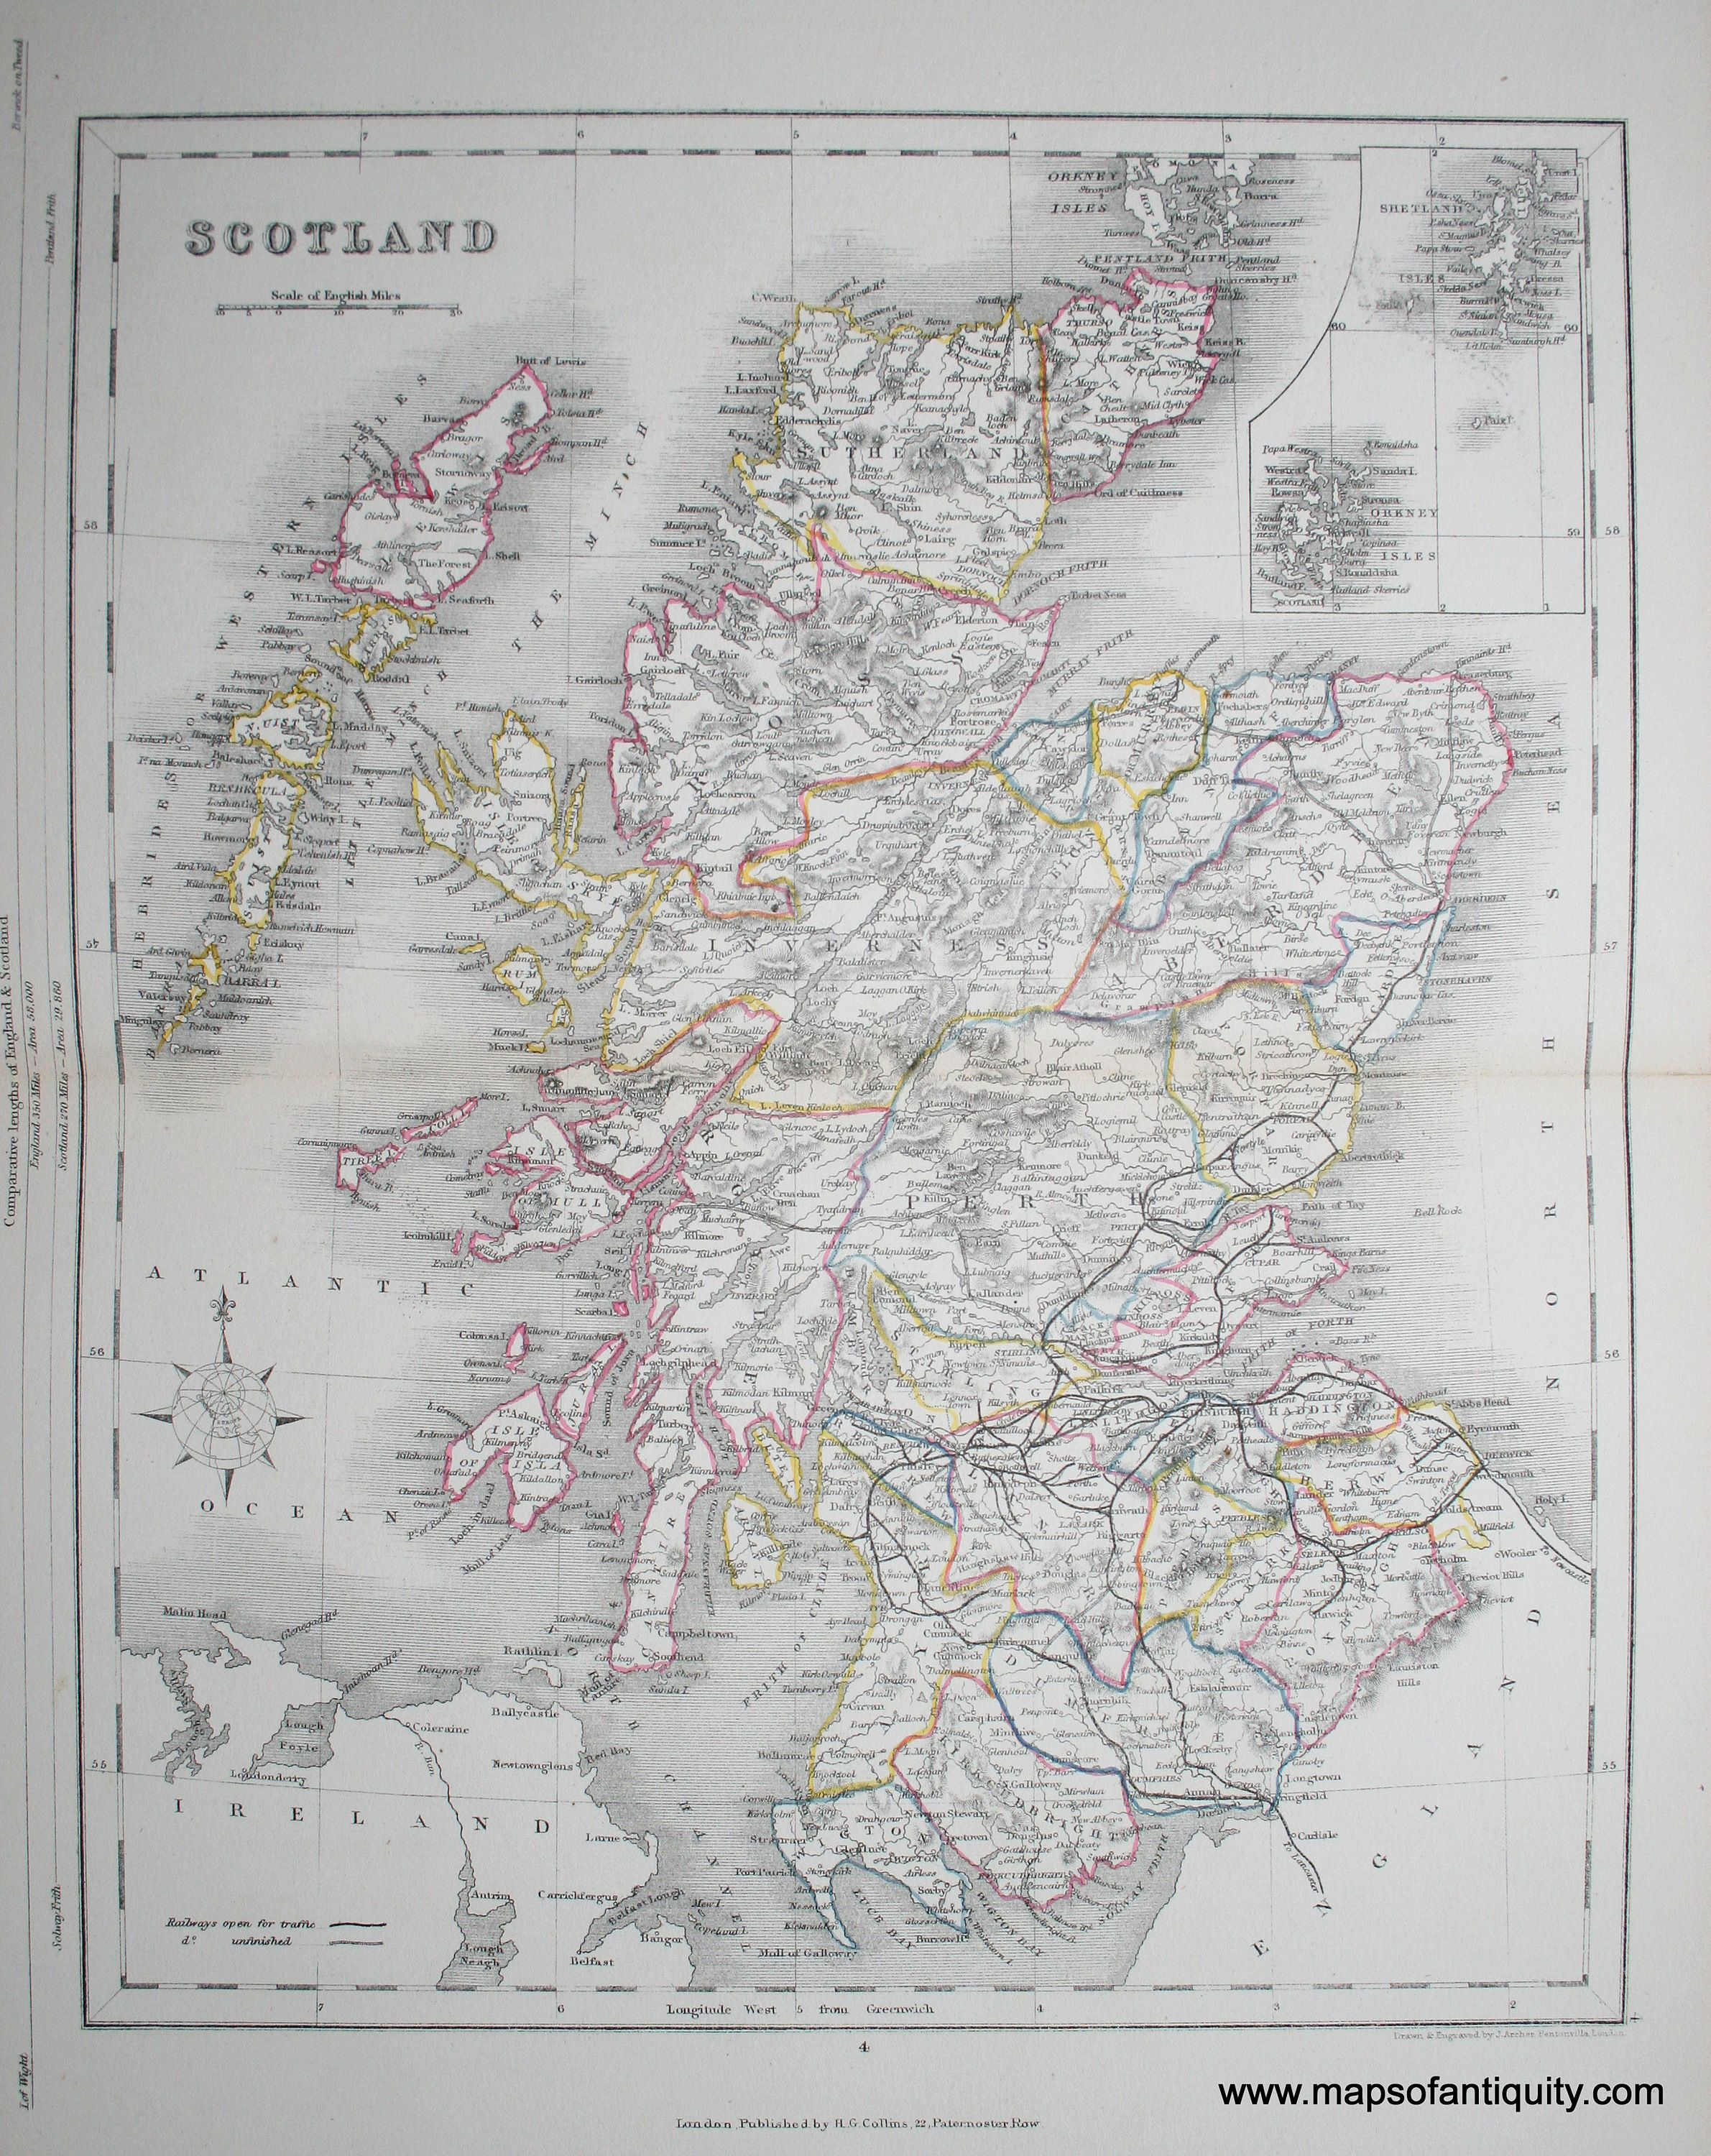 Scotland antique maps and charts original vintage rare scotland antique maps and charts original vintage rare historical antique maps publicscrutiny Image collections